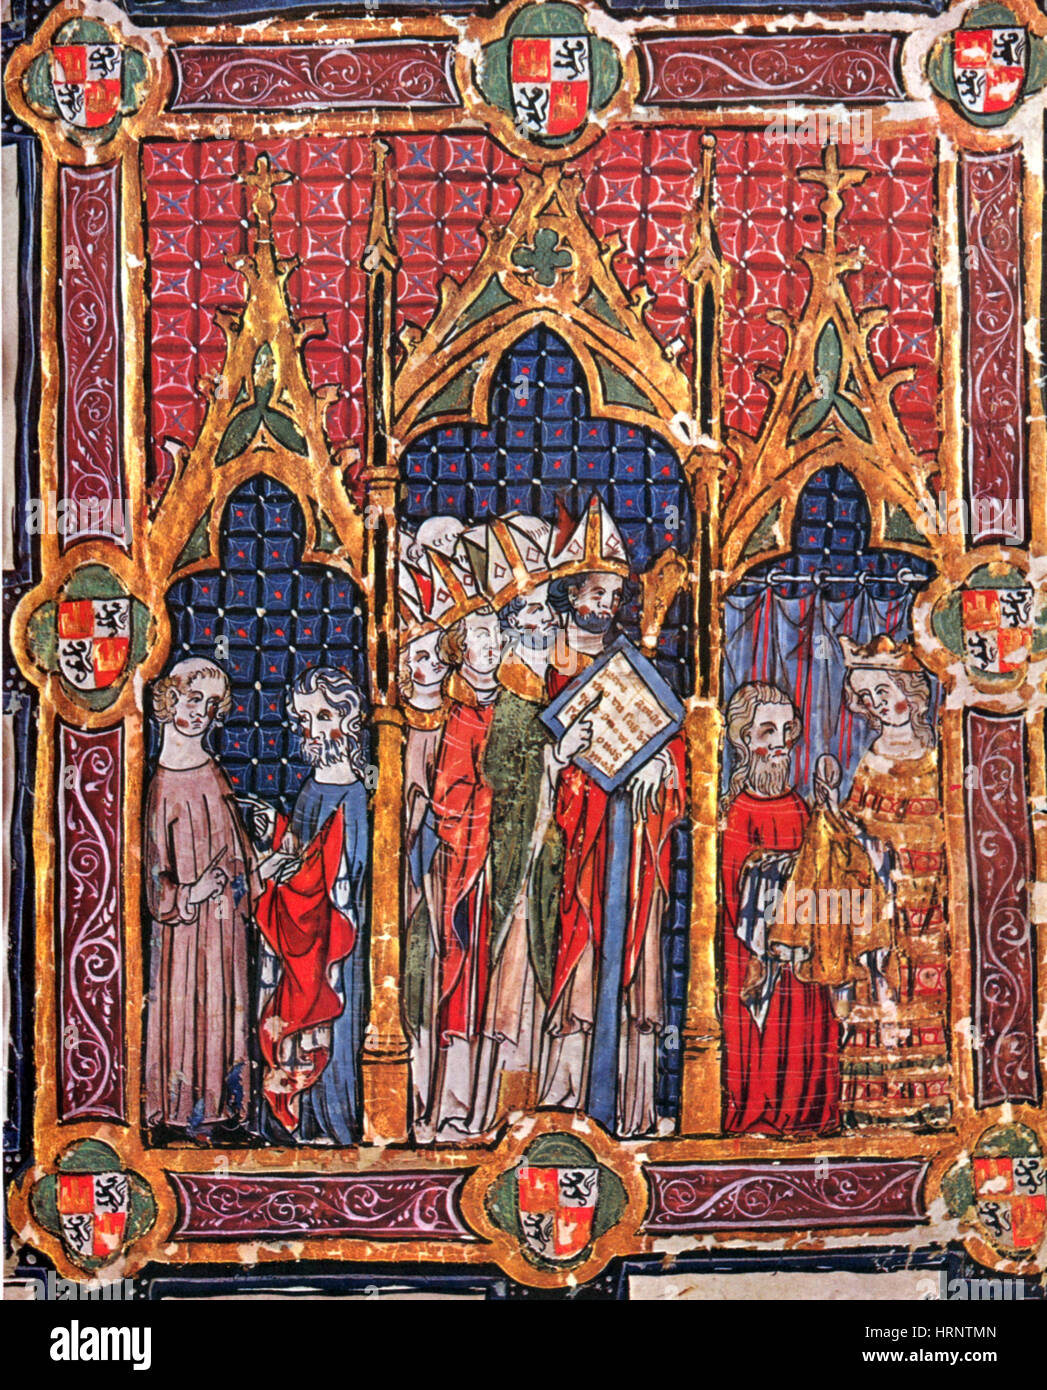 Coronation of the Kings, 14th Century - Stock Image